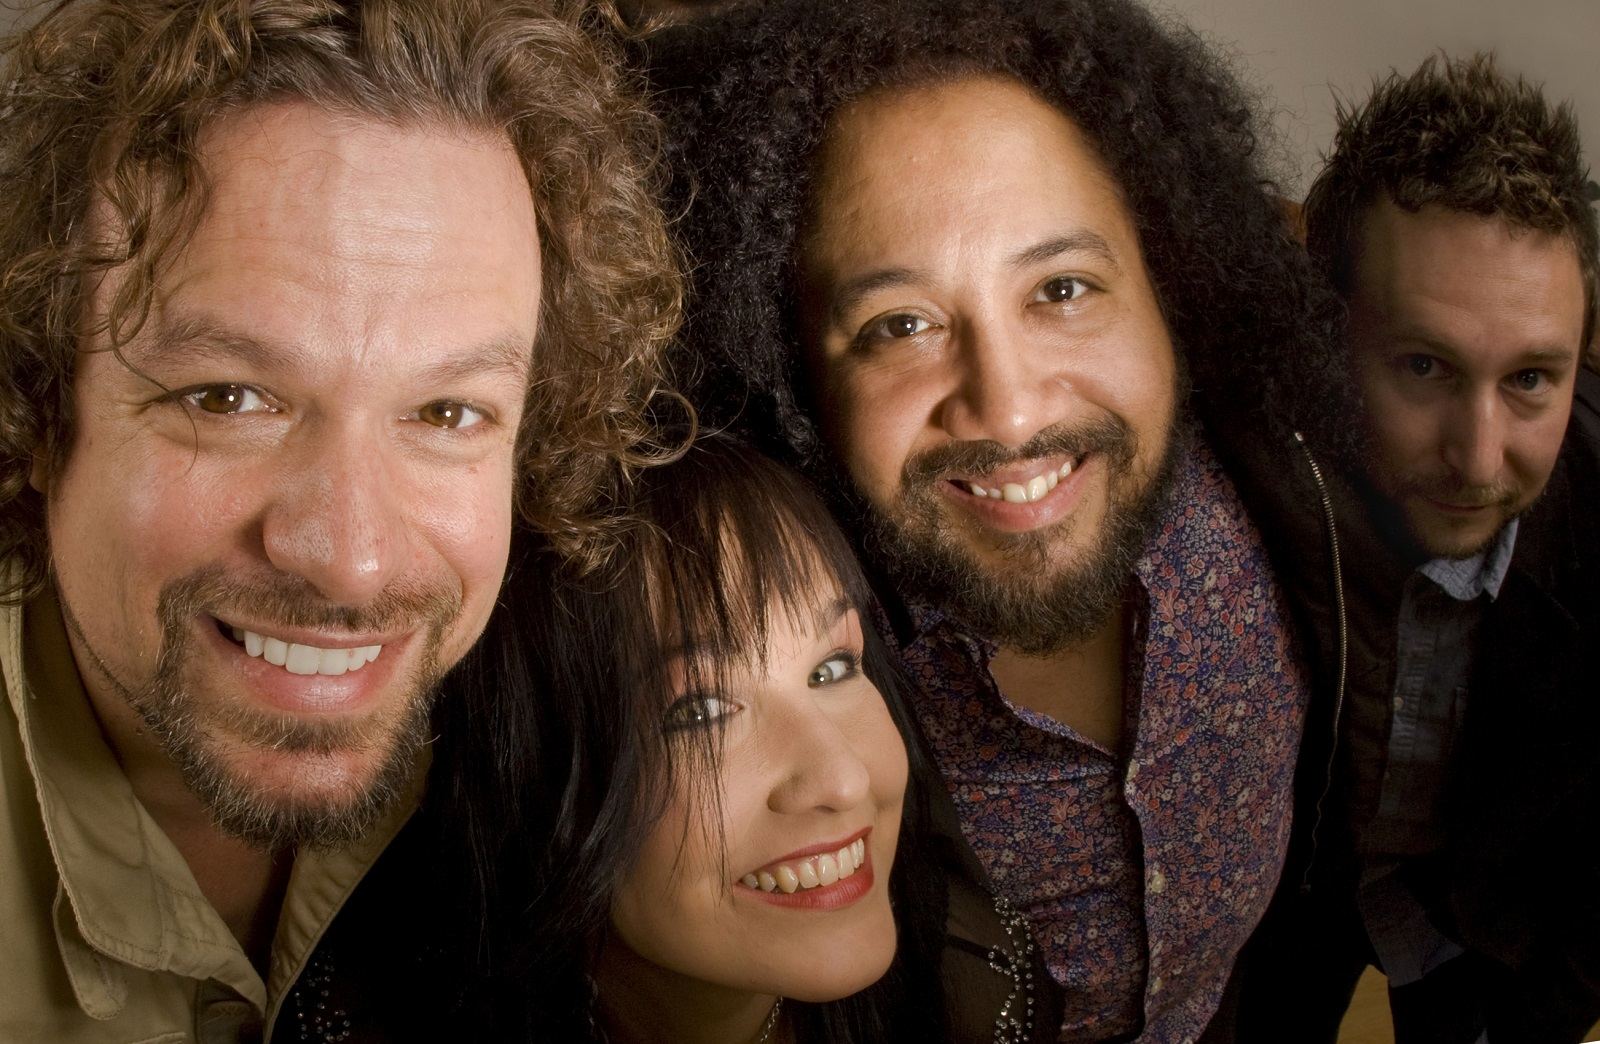 Rusted Root will play a New Year's Eve show at Buffalo Iron Works.